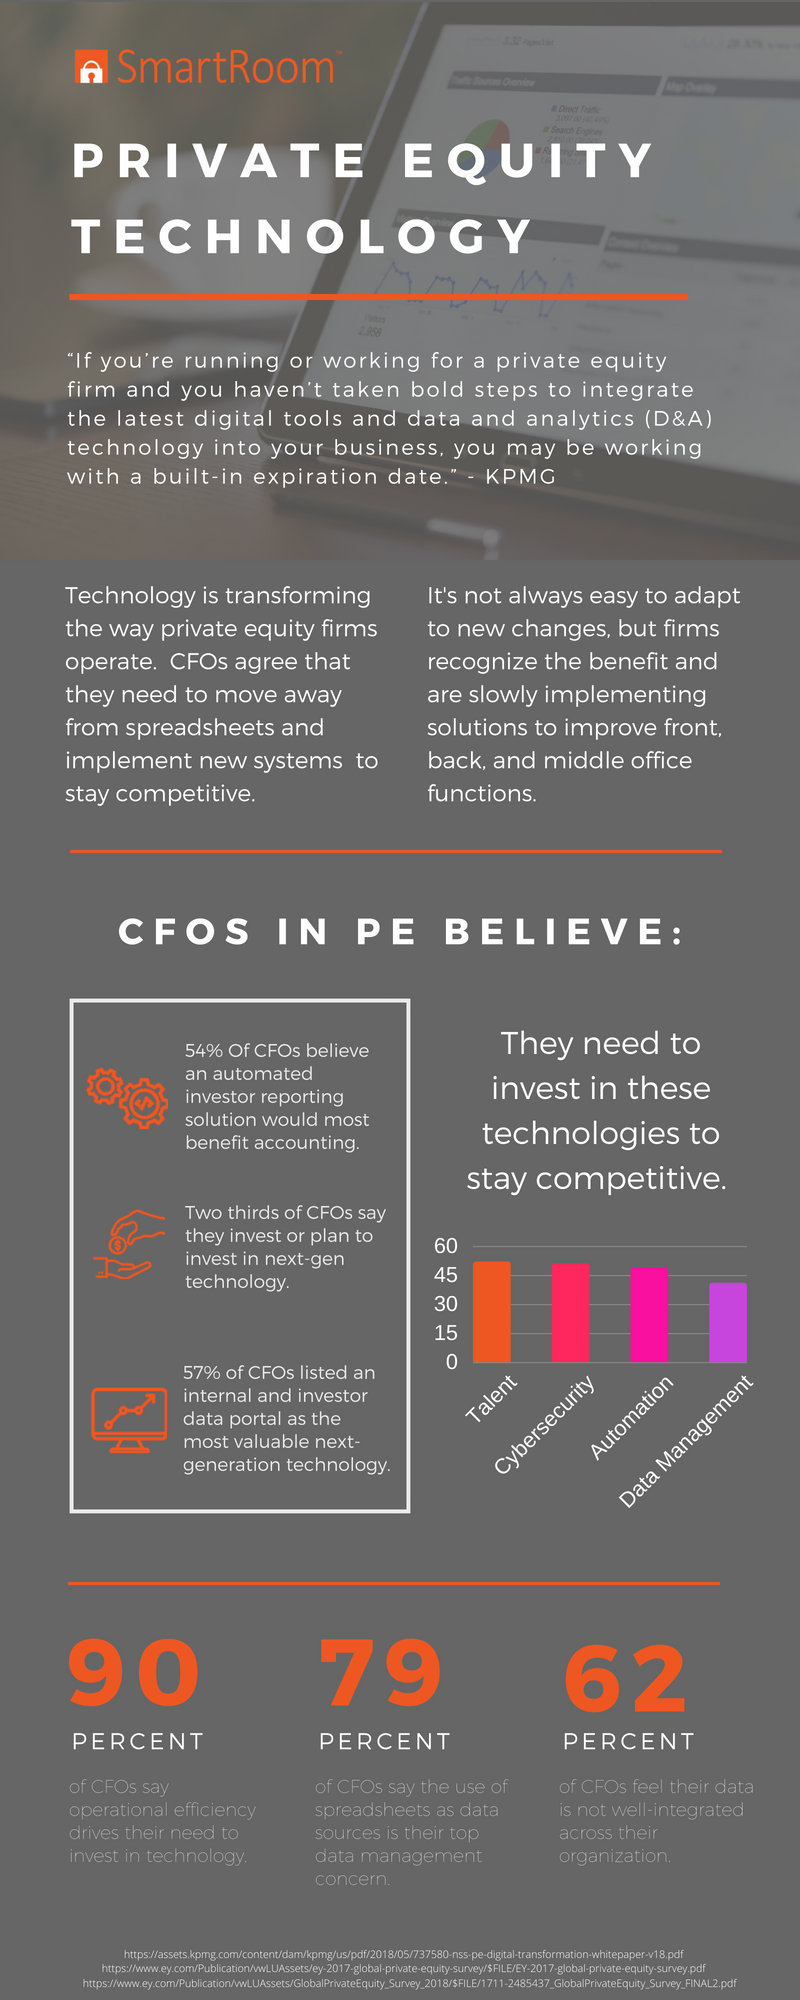 SmartRoom Private Equity Technology Infographic